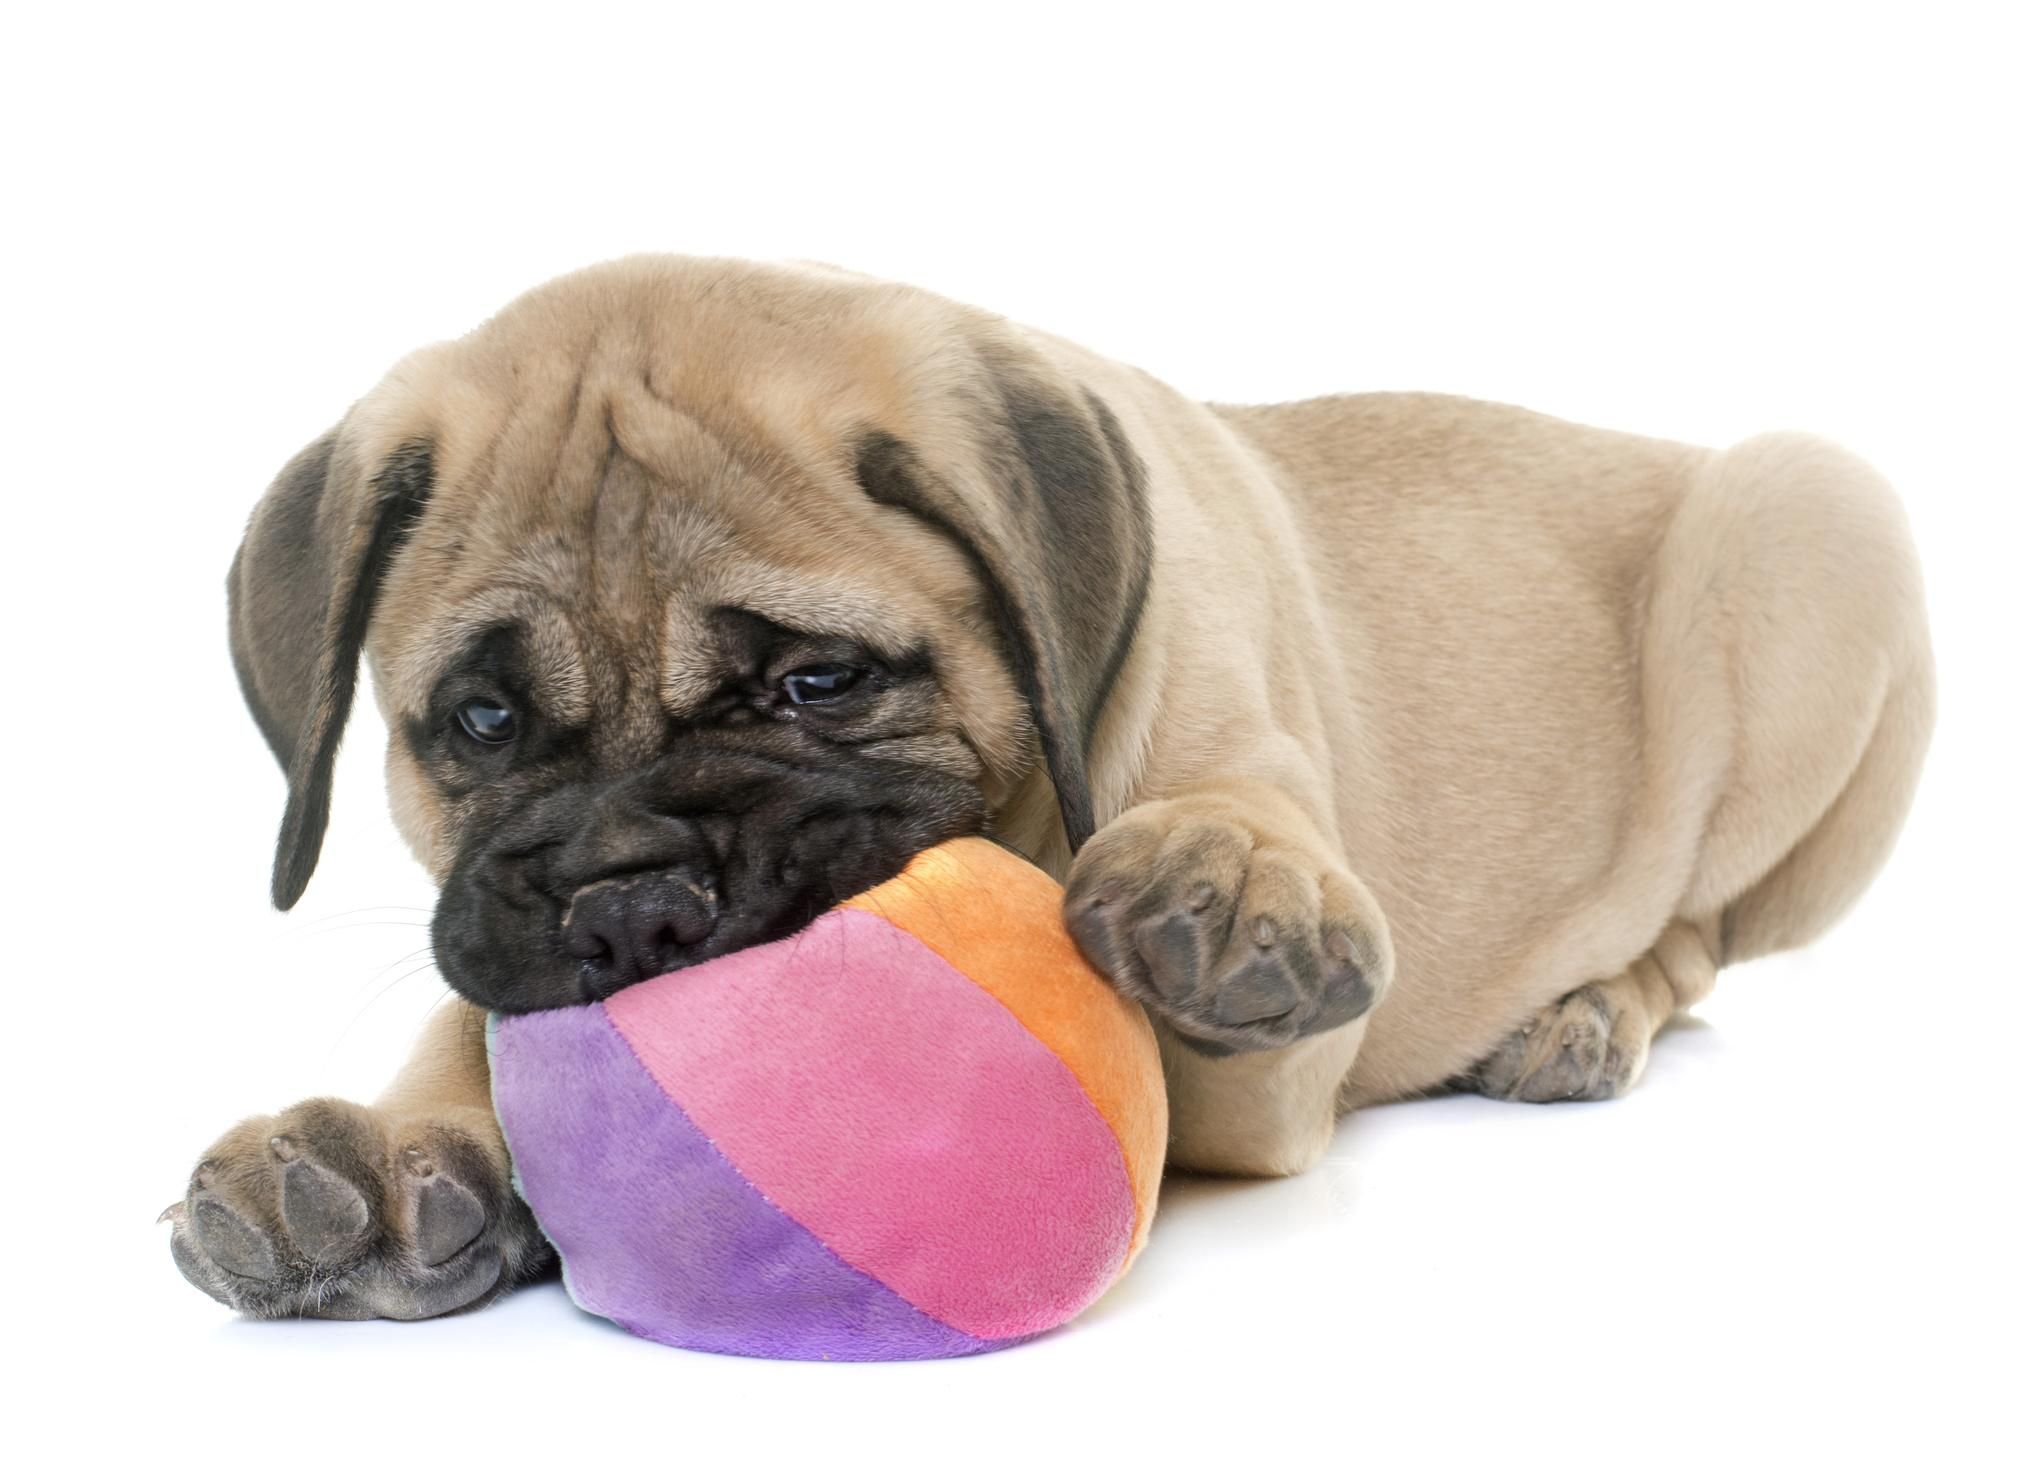 puppy bull mastiff playing with toy